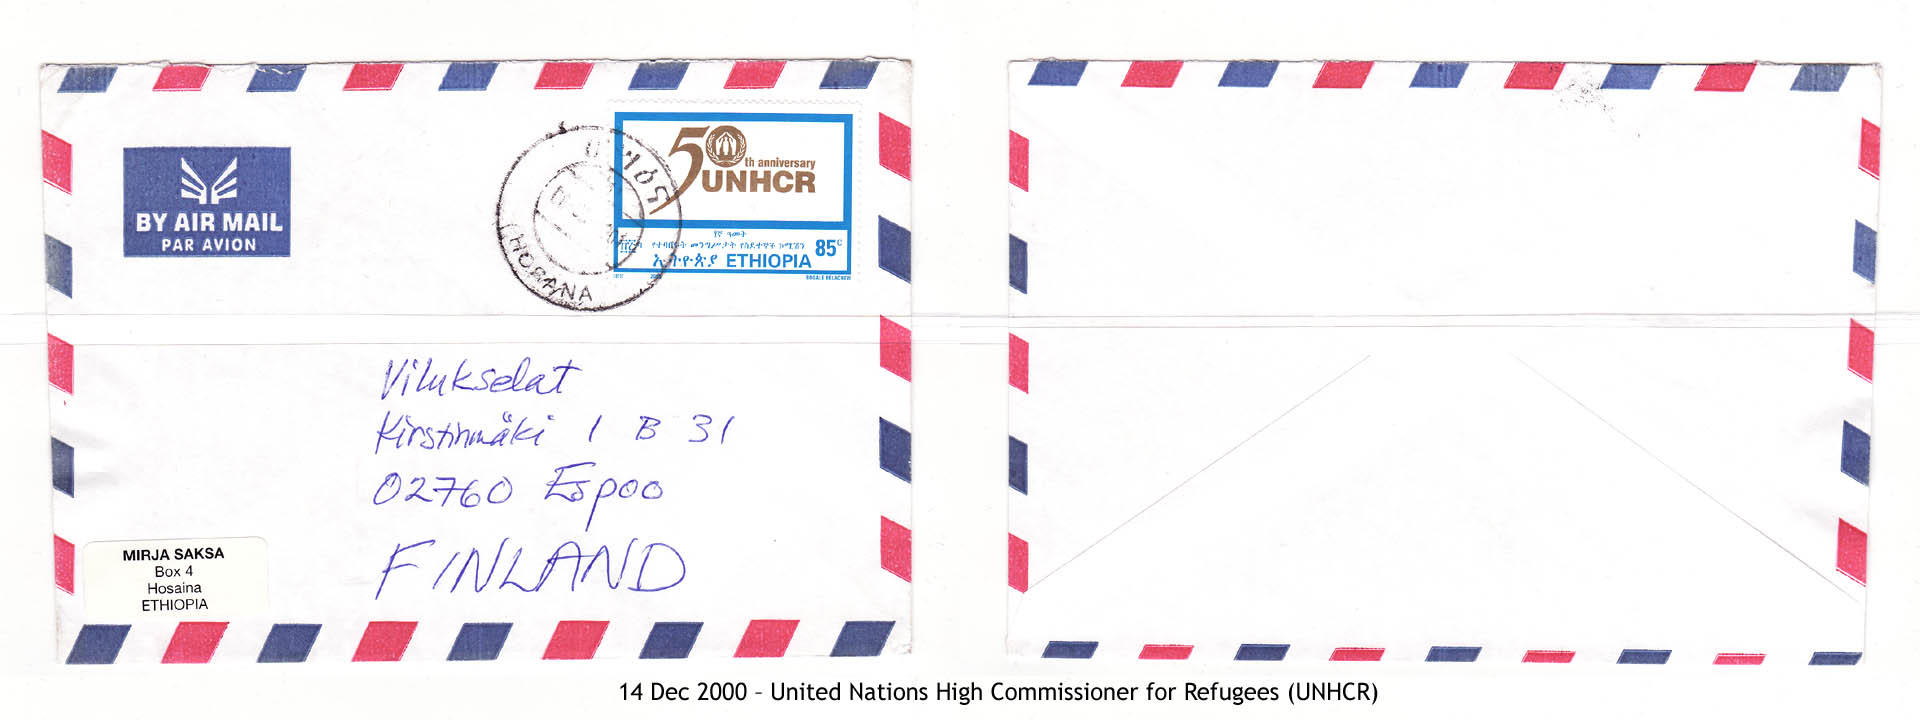 20001214 – United Nations High Commissioner for Refugees (UNHCR)